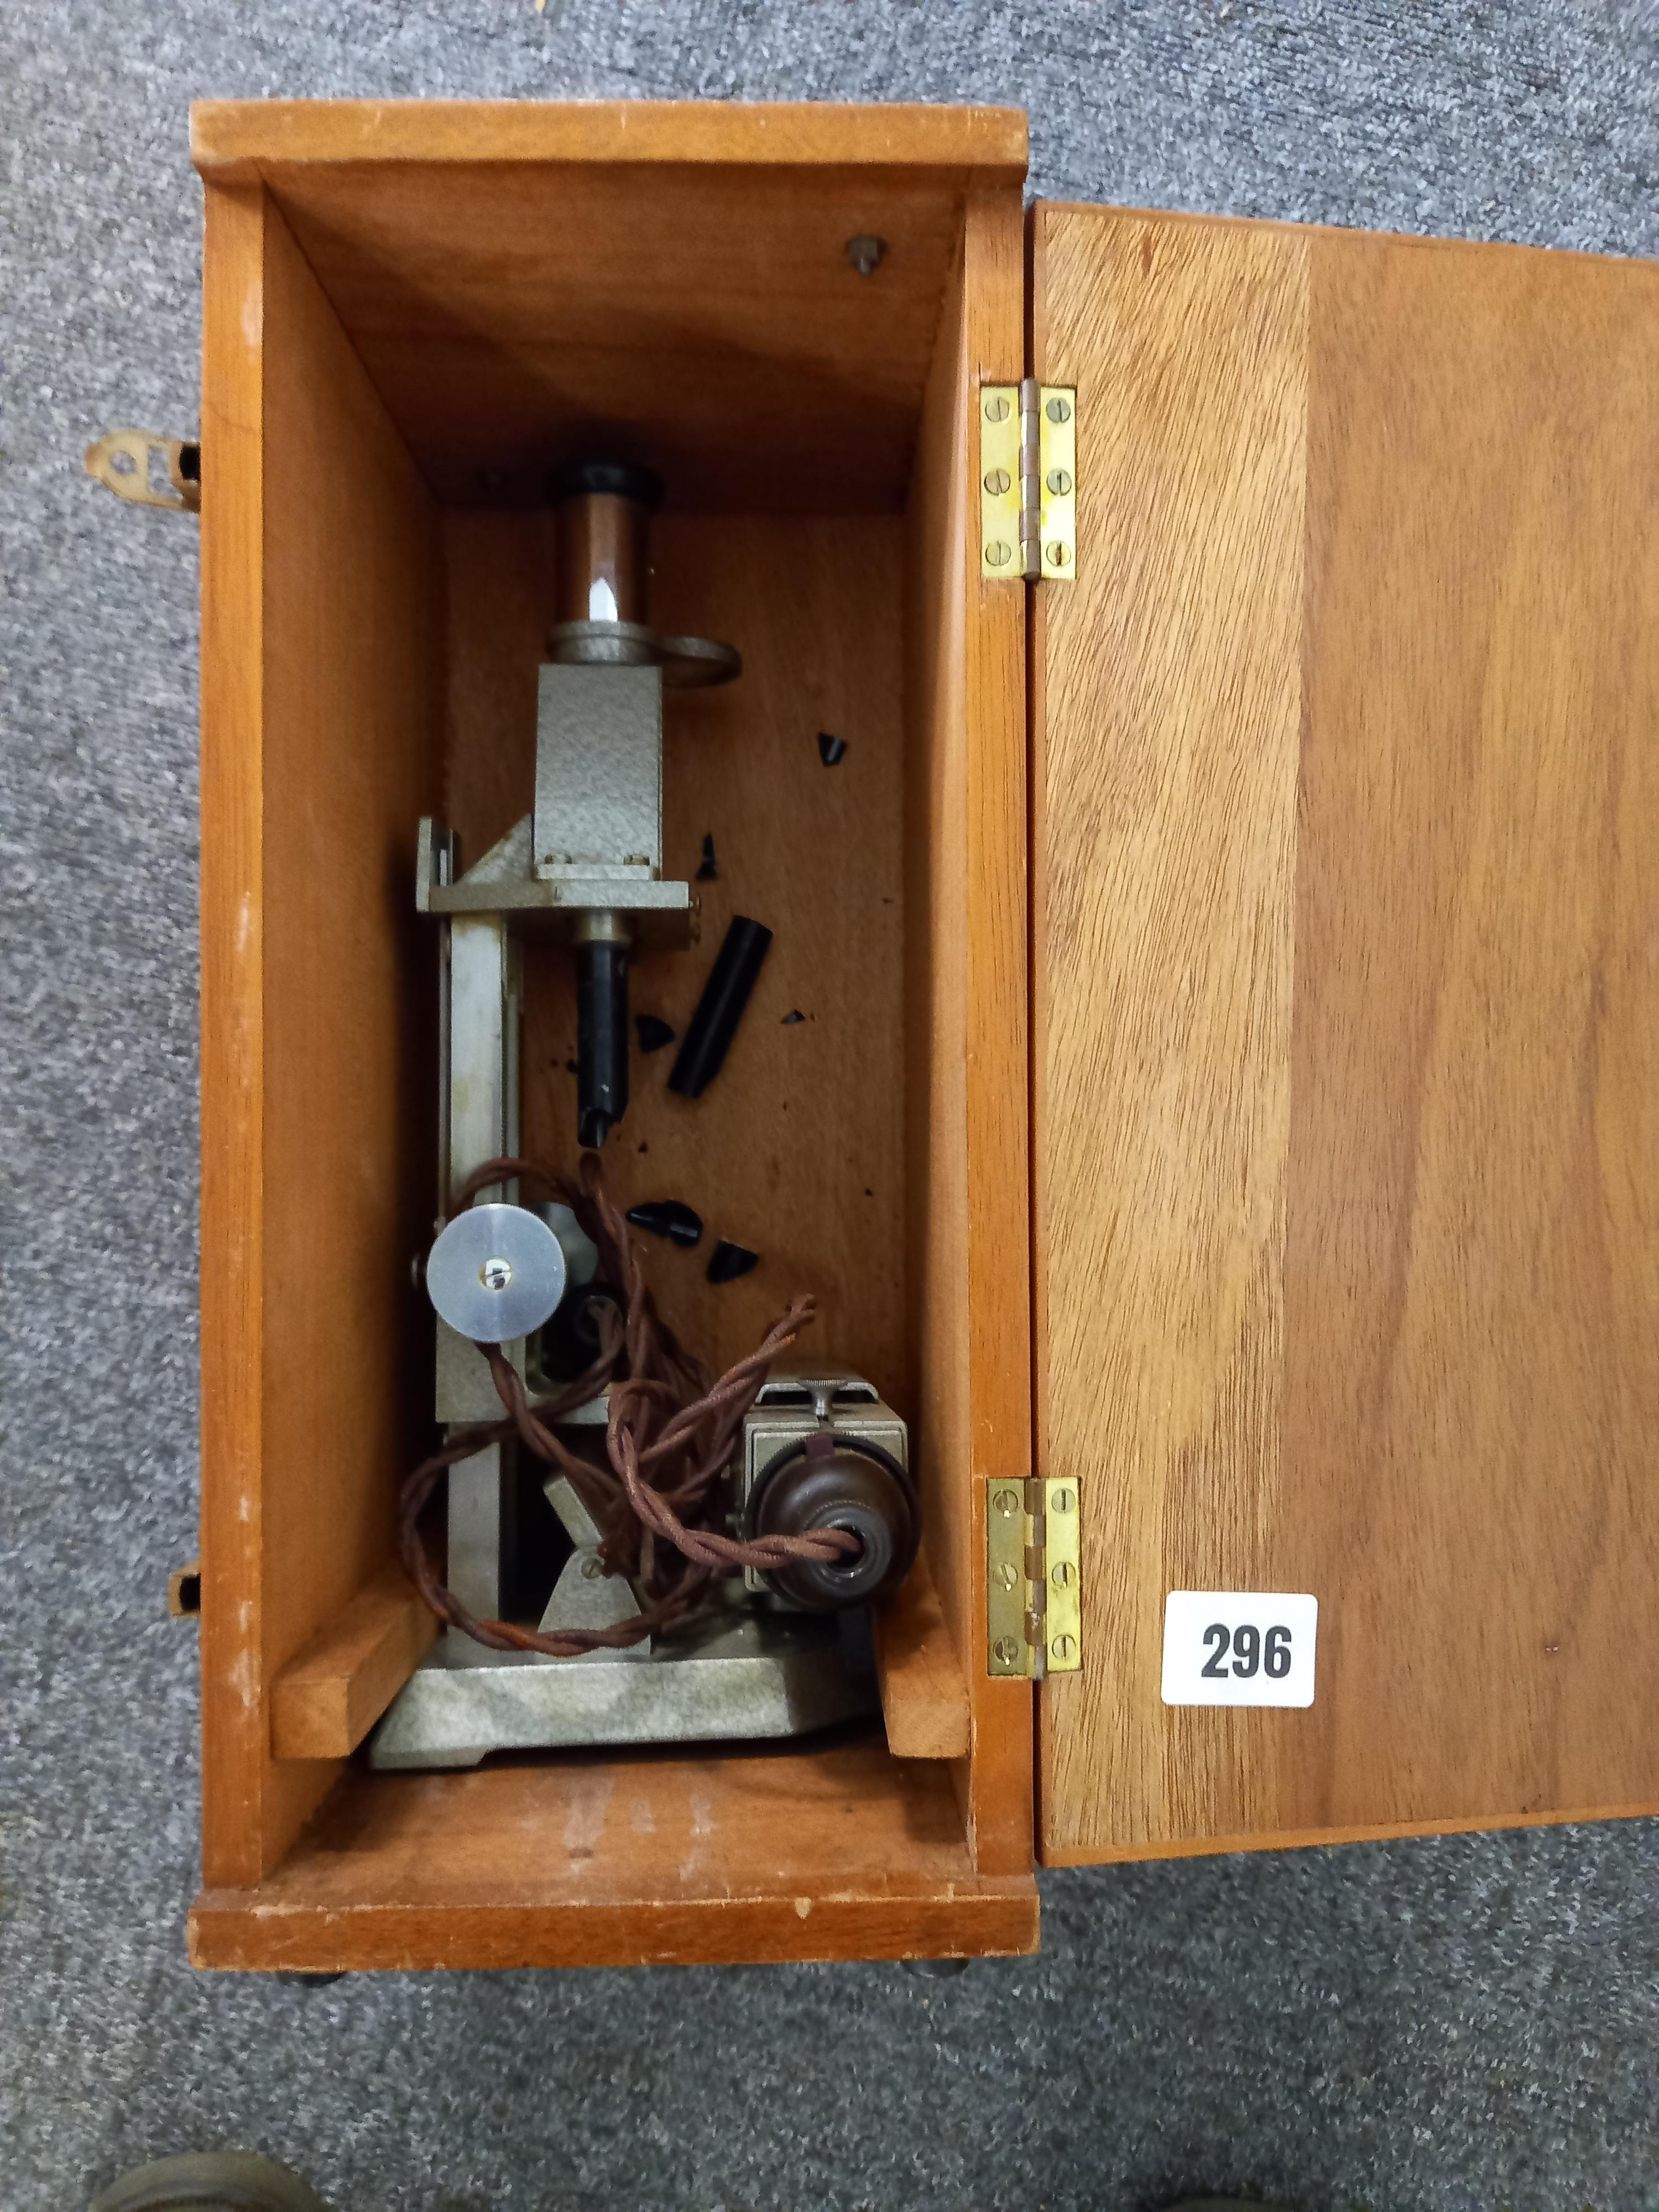 ELECTRIC MICROSCOPE IN A WOODEN CASE